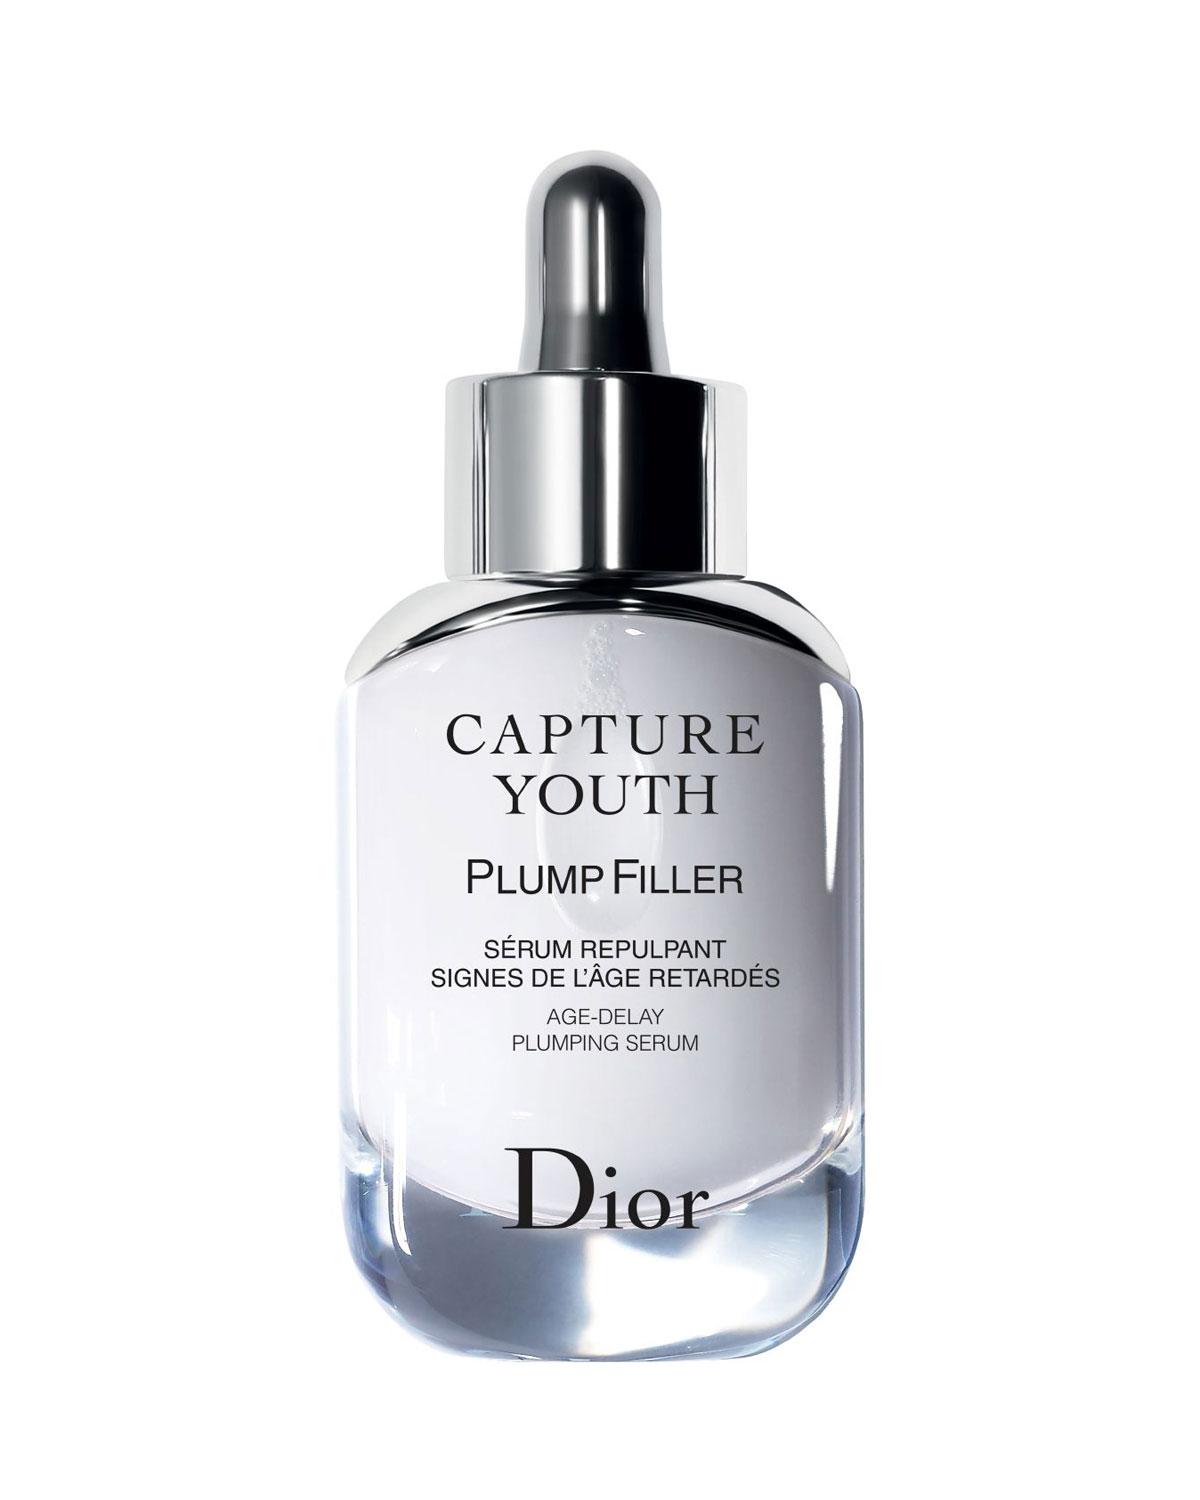 Dior 1.0 oz. Capture Youth Plump Filter Age-Delay Plumping Serum